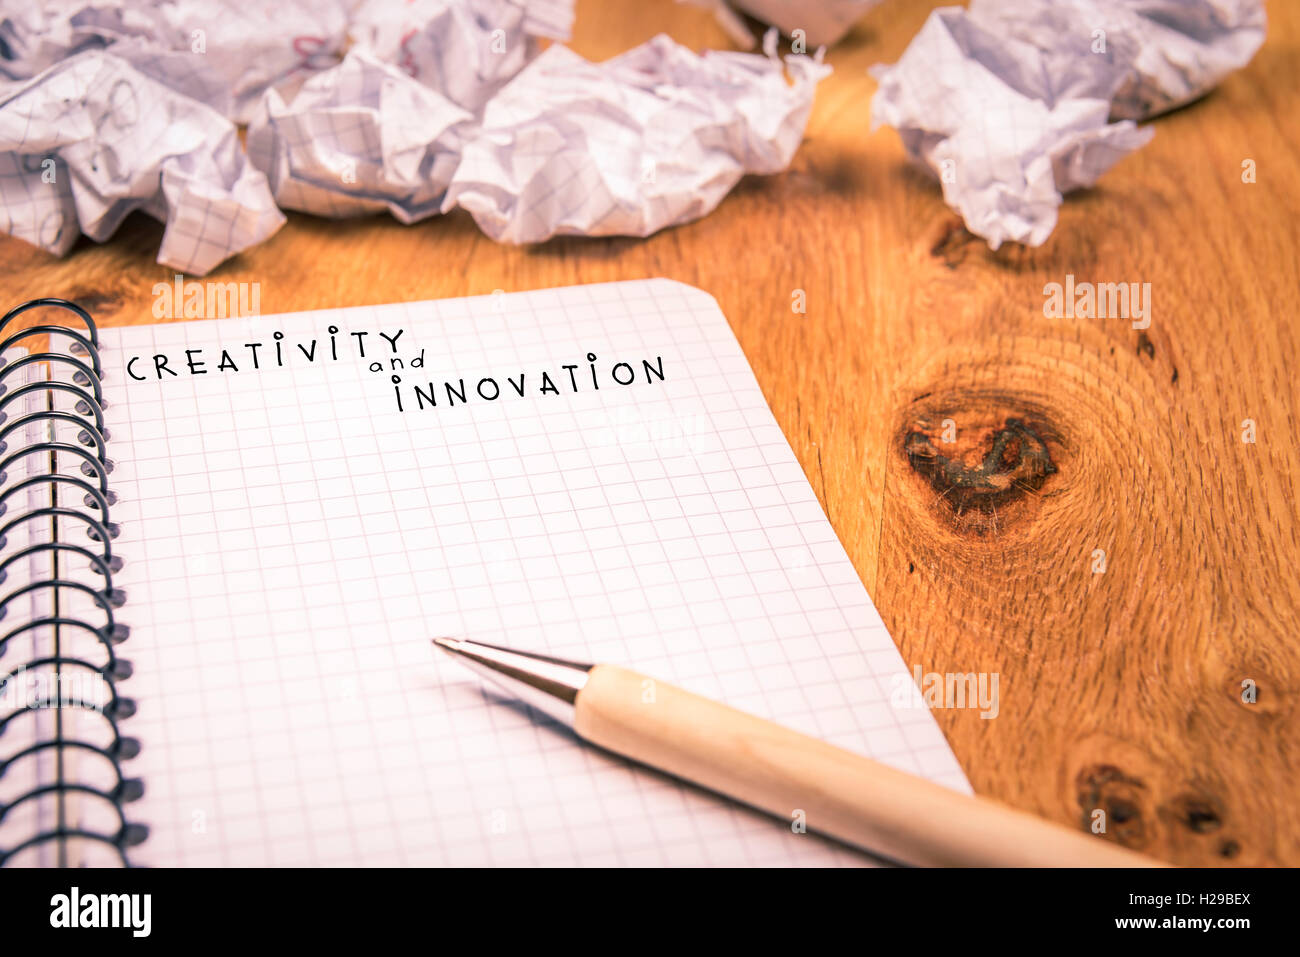 Creativity and innovation concept - Stock Image